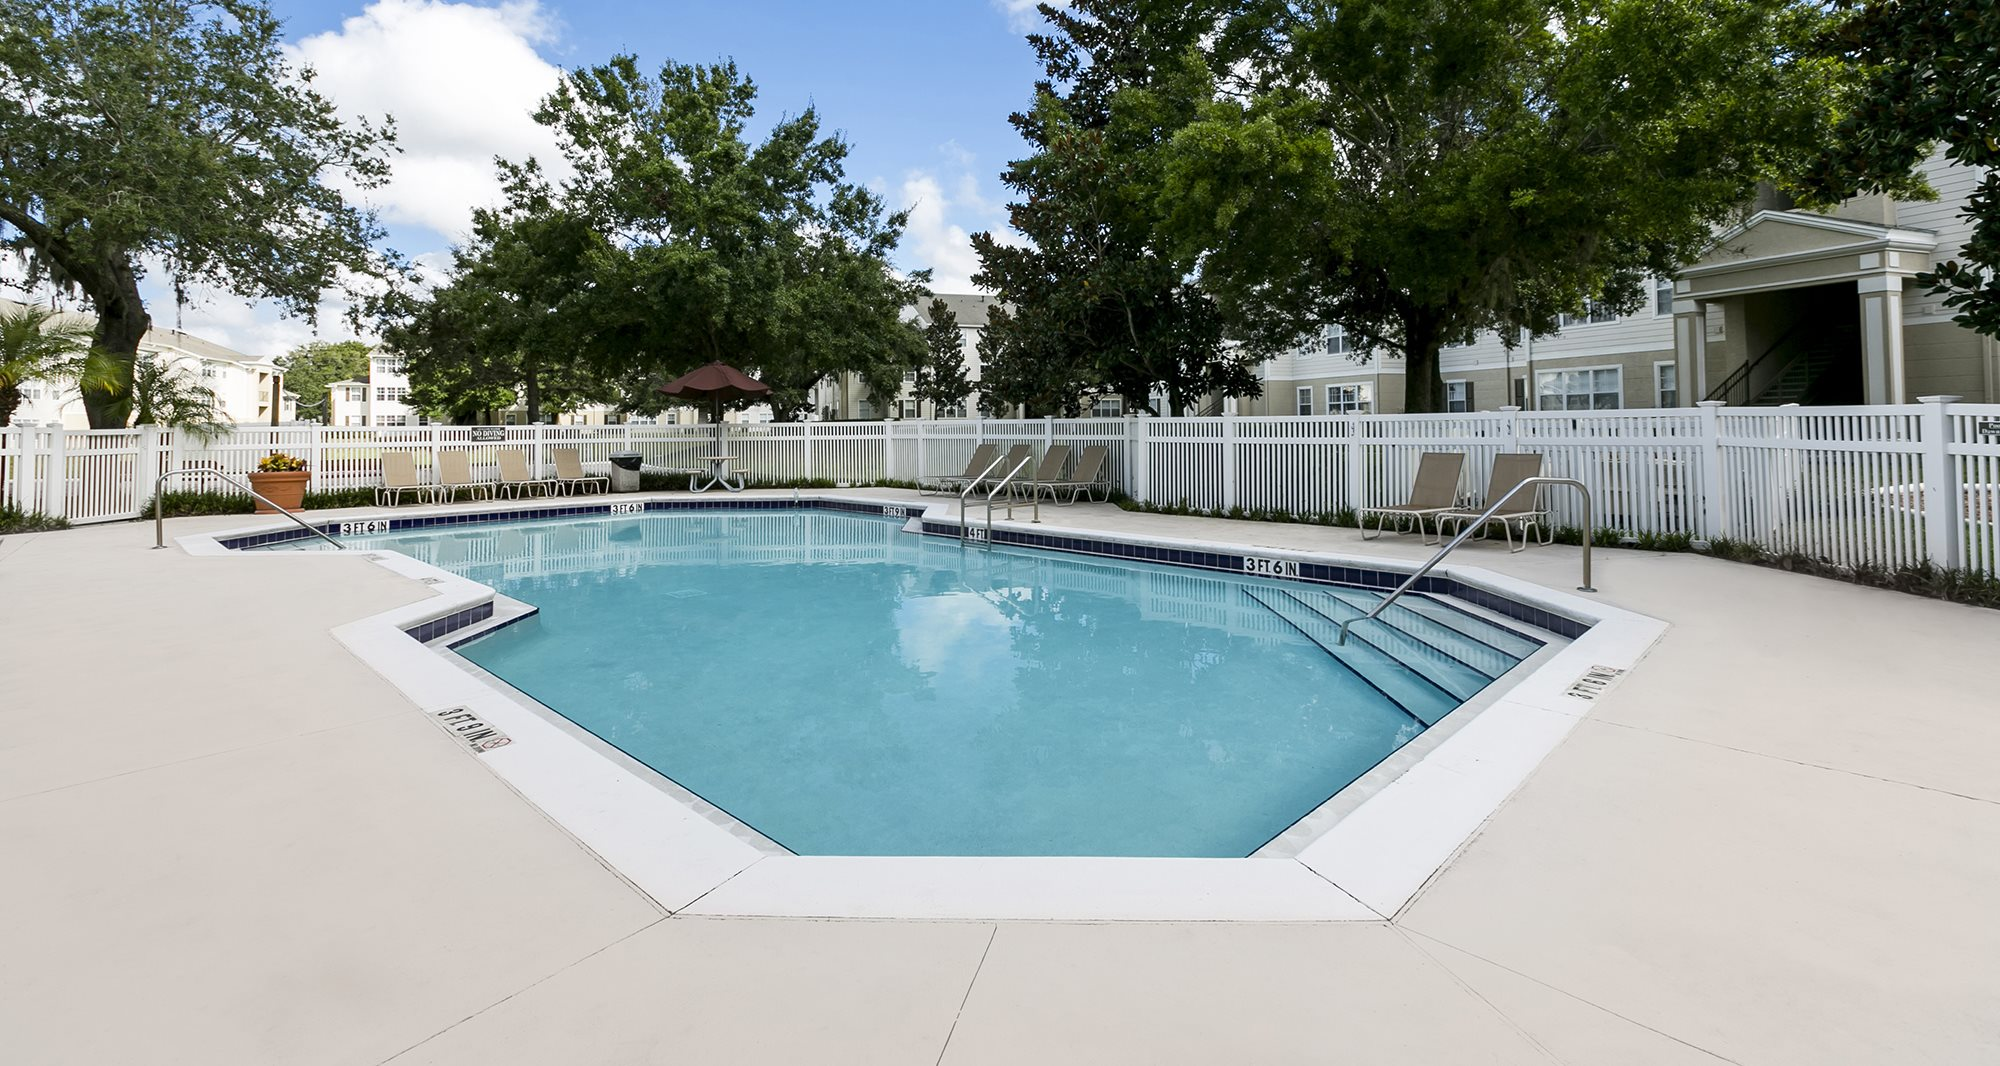 Lakewood Shores Apartments for rent in Brandon, FL. Make this community your new home or visit other Concord Rents communities at ConcordRents.com. Pool